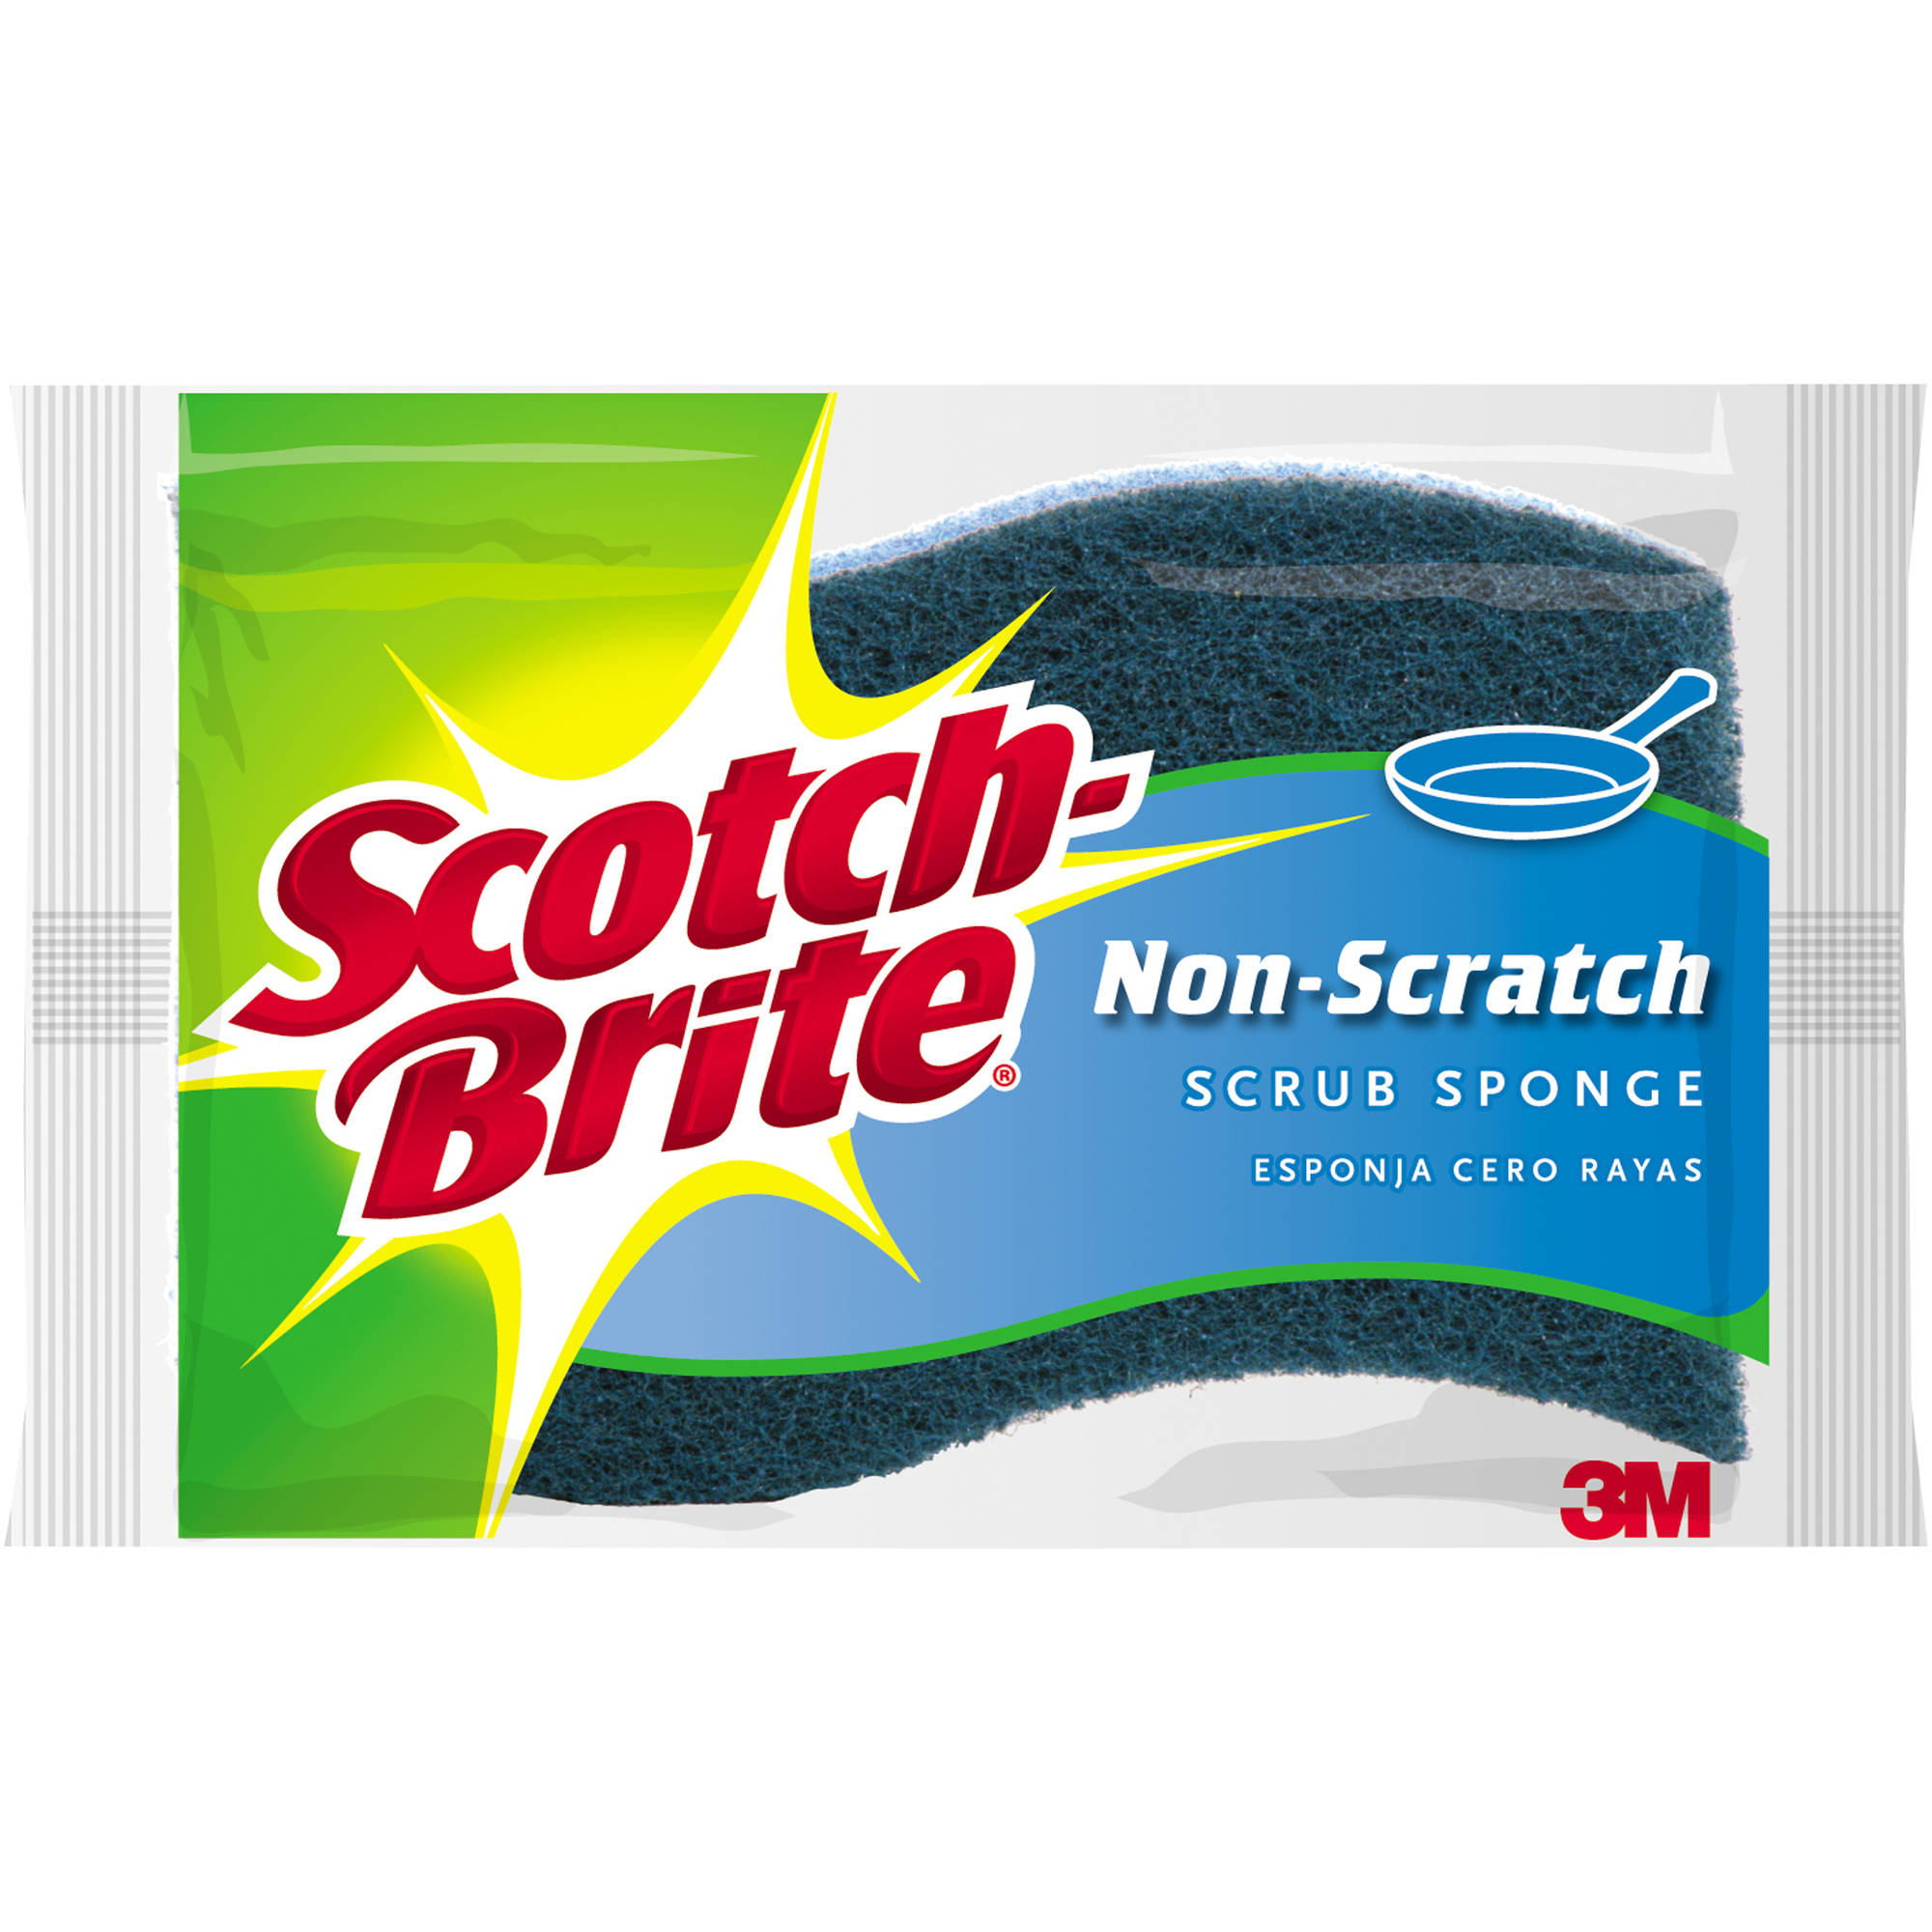 Scotch-Brite No Scratch Multi-Purpose Scrub Sponges, 9 pack